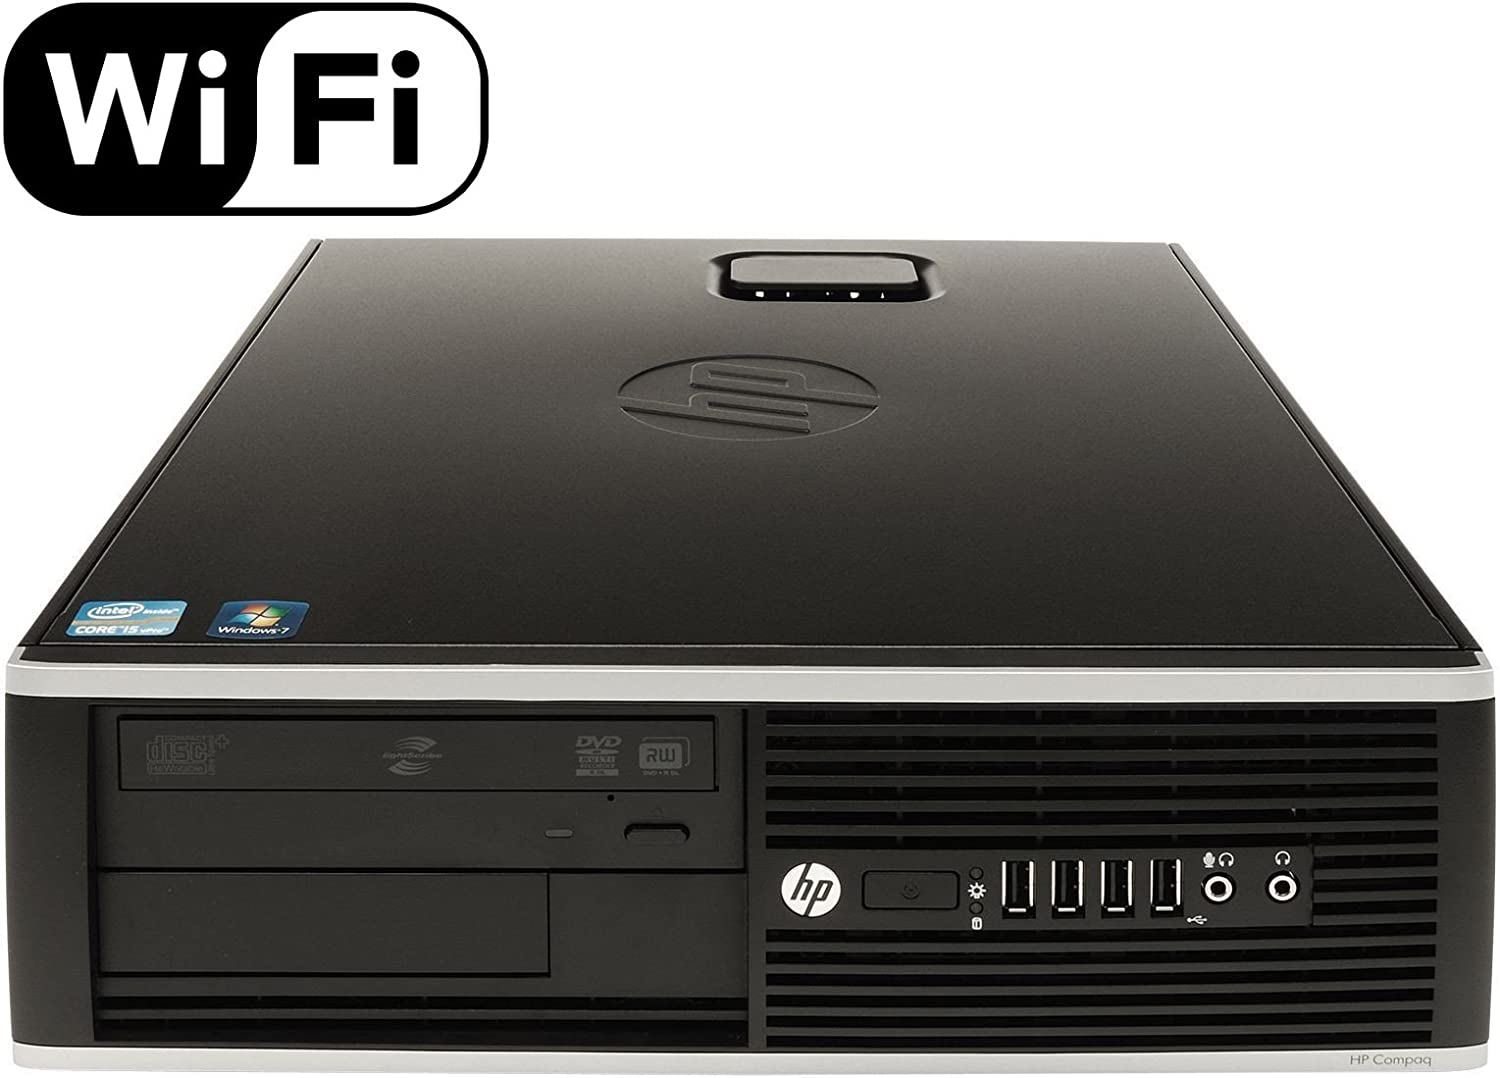 HP Premium Flagship 8200 Small Form Factor Business Desktop (Intel Quad-Core i5 3.1GHz, 8GB DDR3 RAM, 1TB HDD + 240GB SSD, DVD, VGA, DisplayPort, Windows 10 Professional) (Renewed)